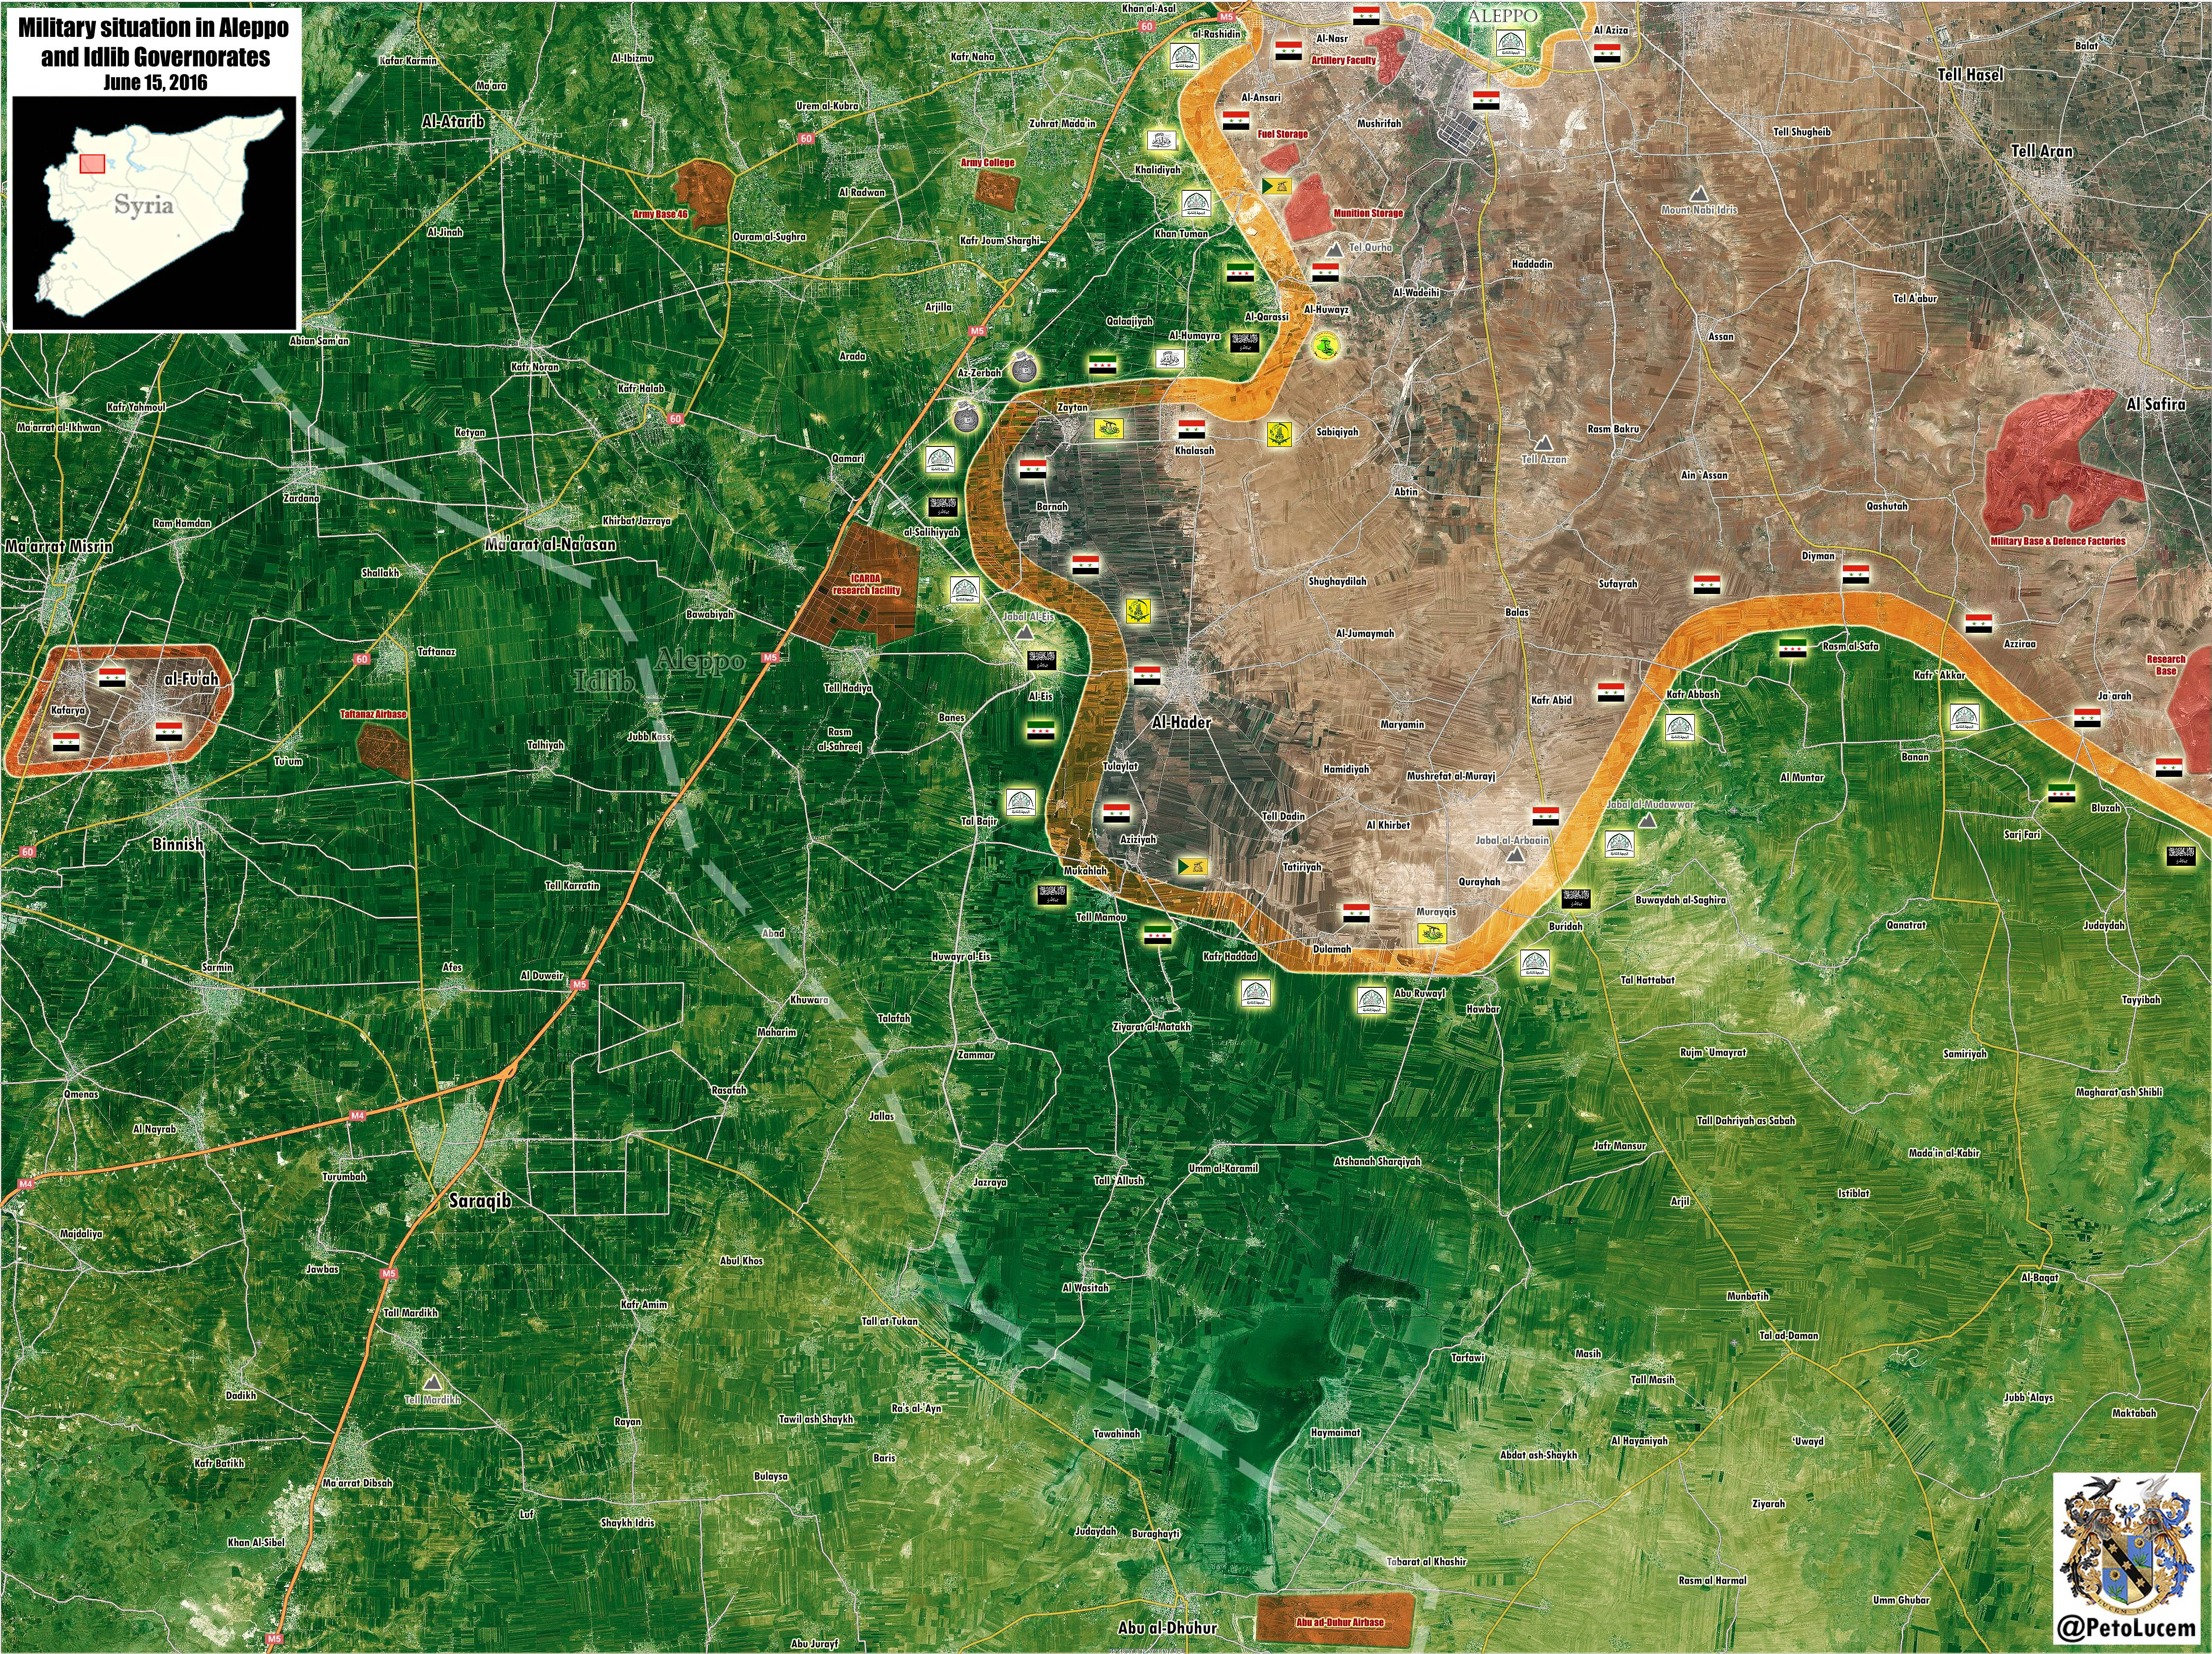 Military Situation in Syria's Provinces of Aleppo and Idlib on June 15